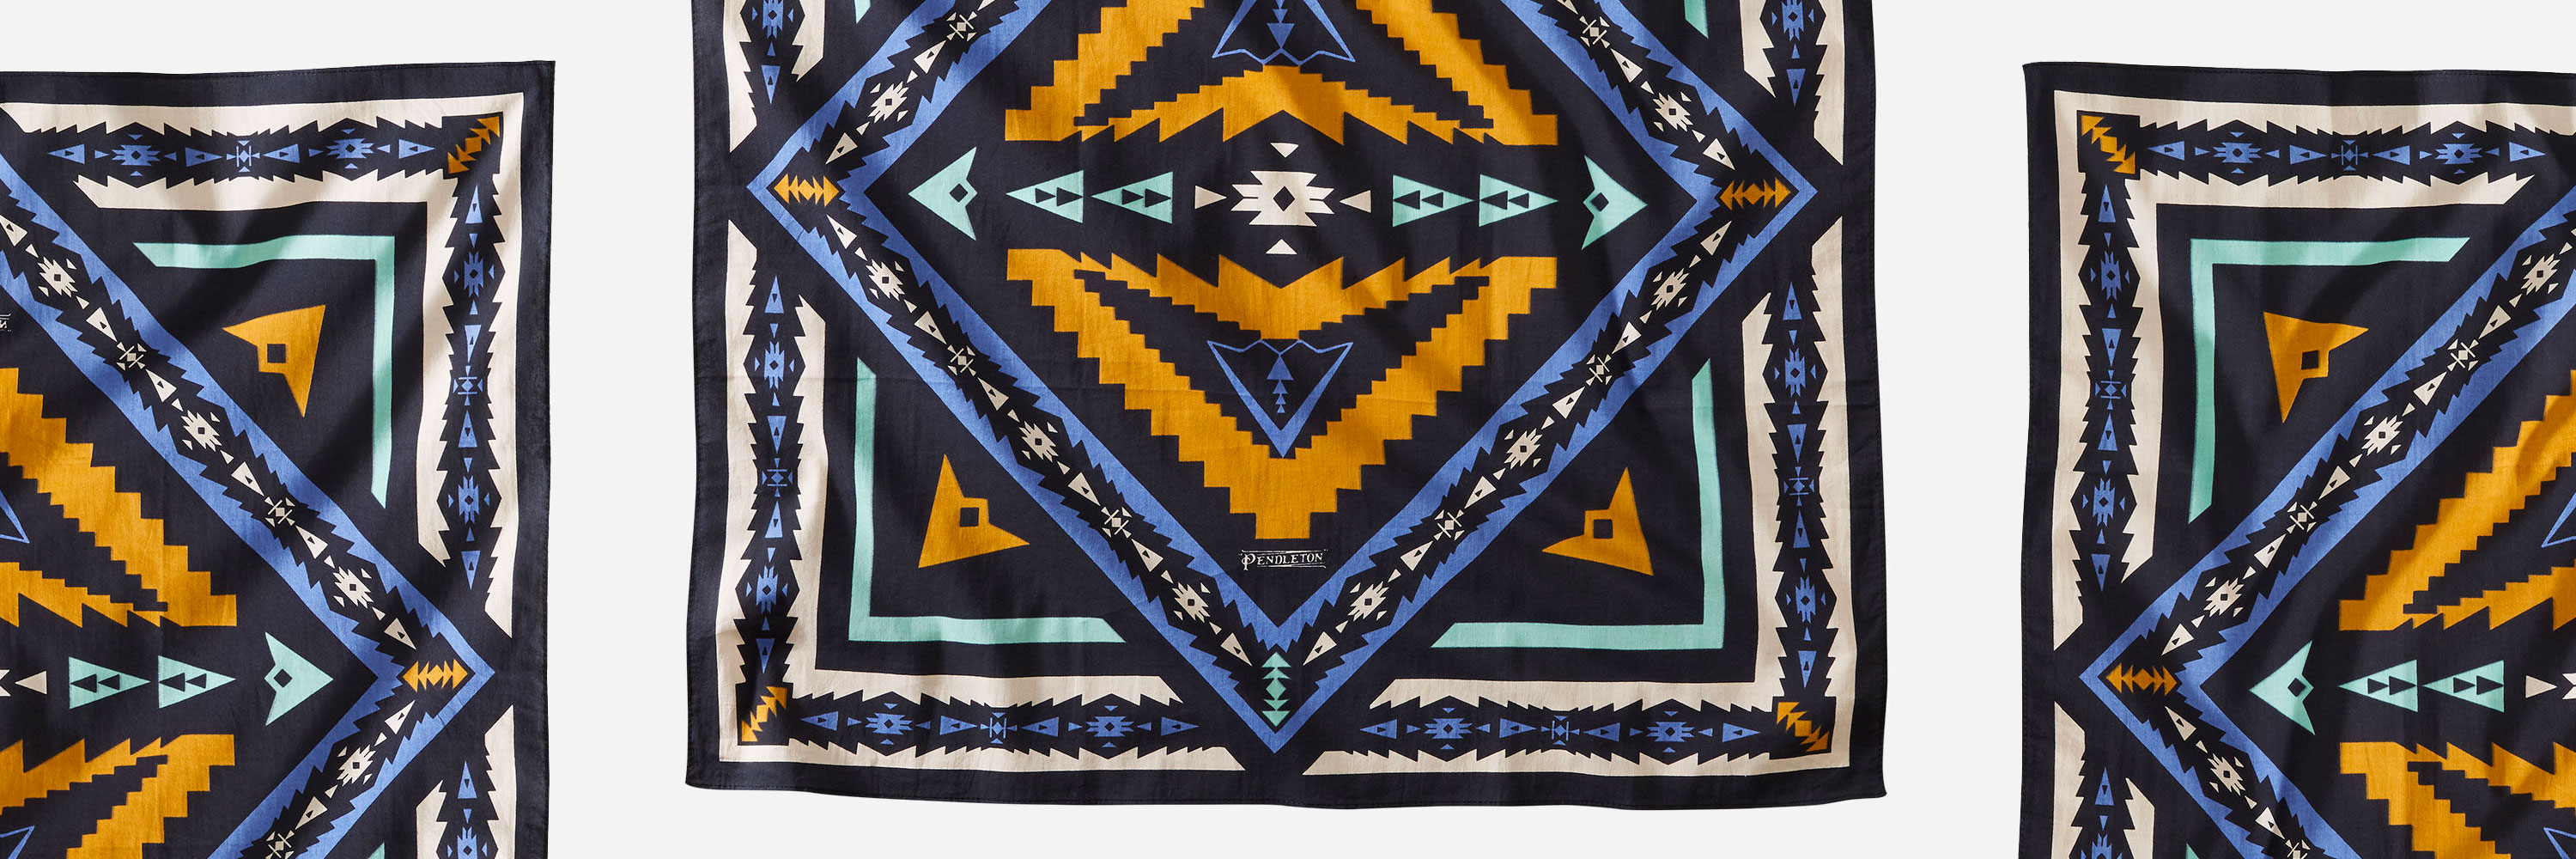 best edc handkerchief pendleton bandana with orange and blue accent colors